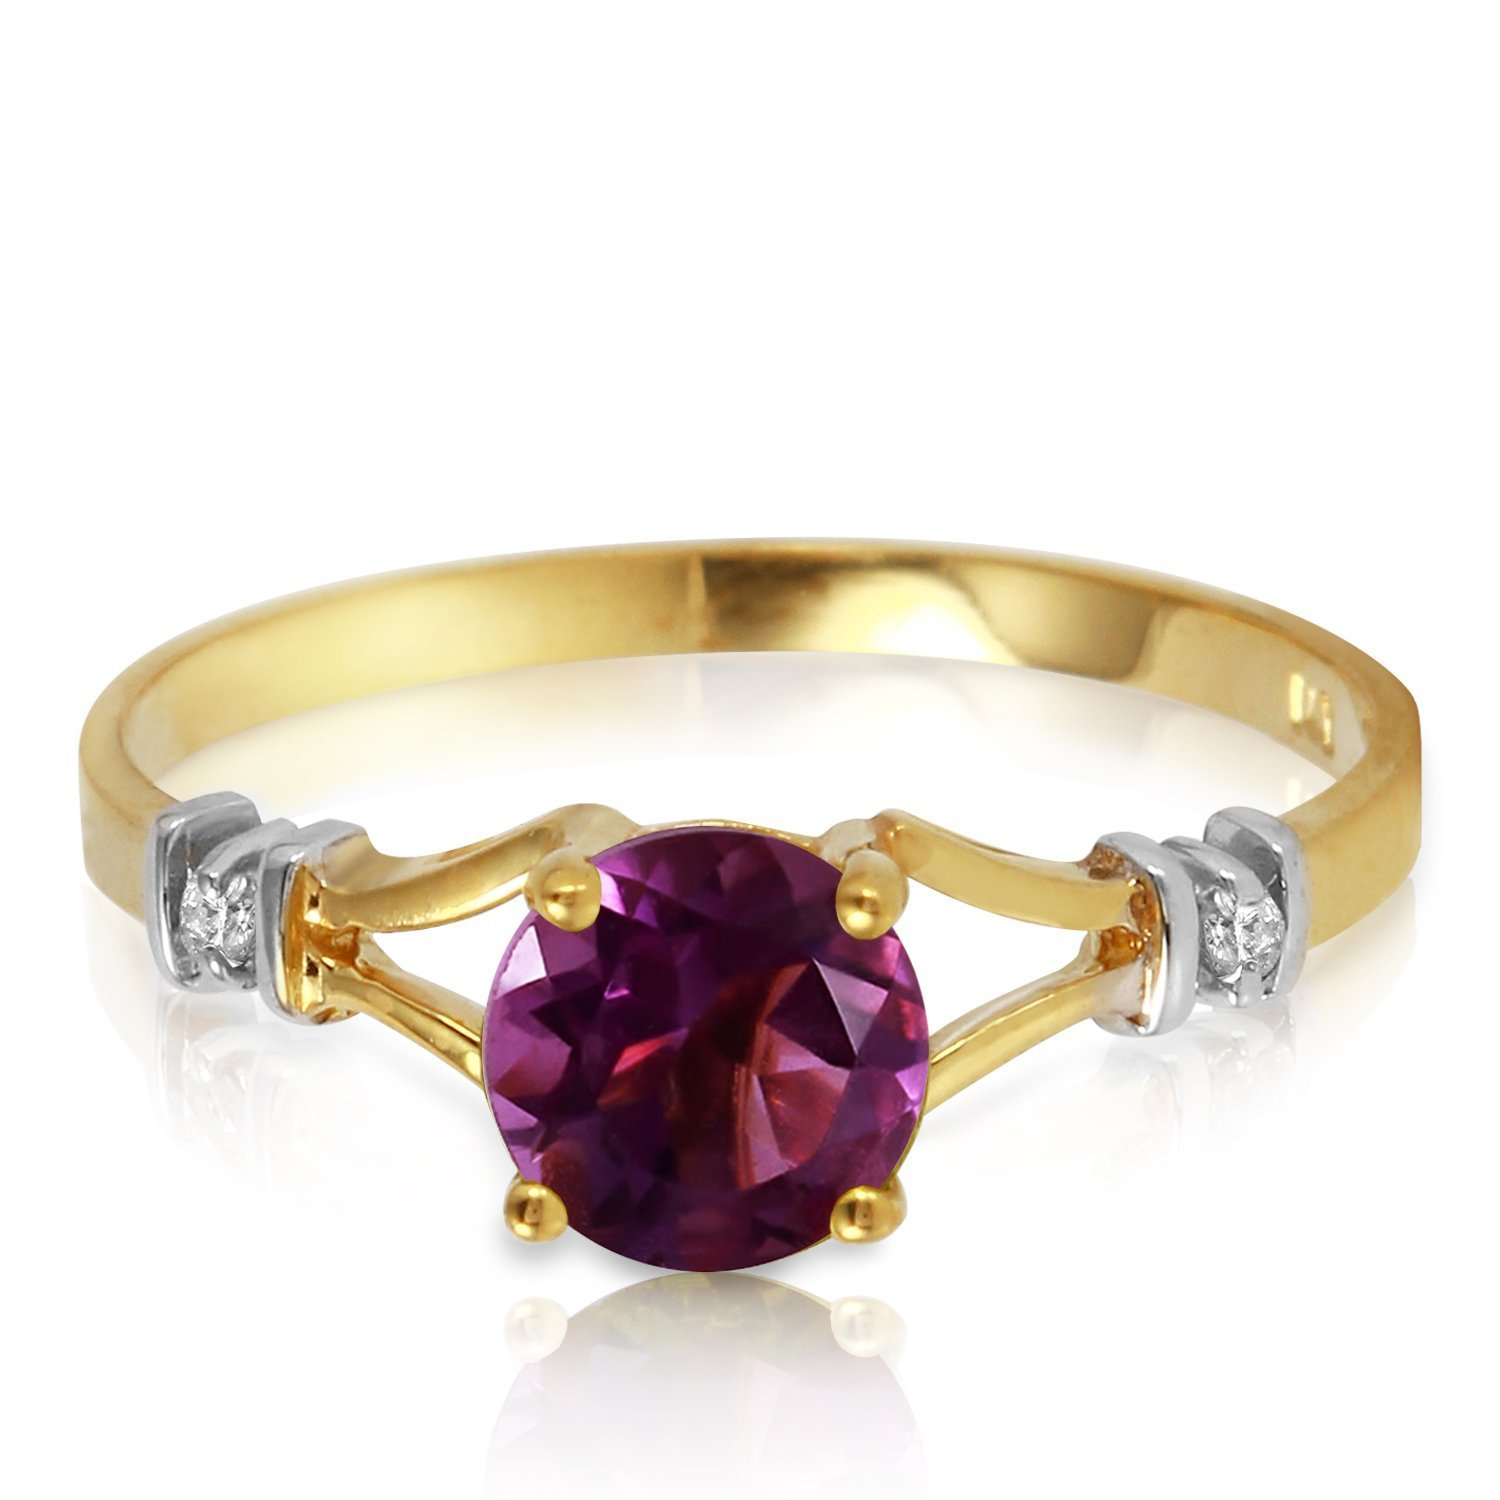 0.92 Carat 14k Solid Gold Ring with Natural Diamonds and Amethyst - Size 11